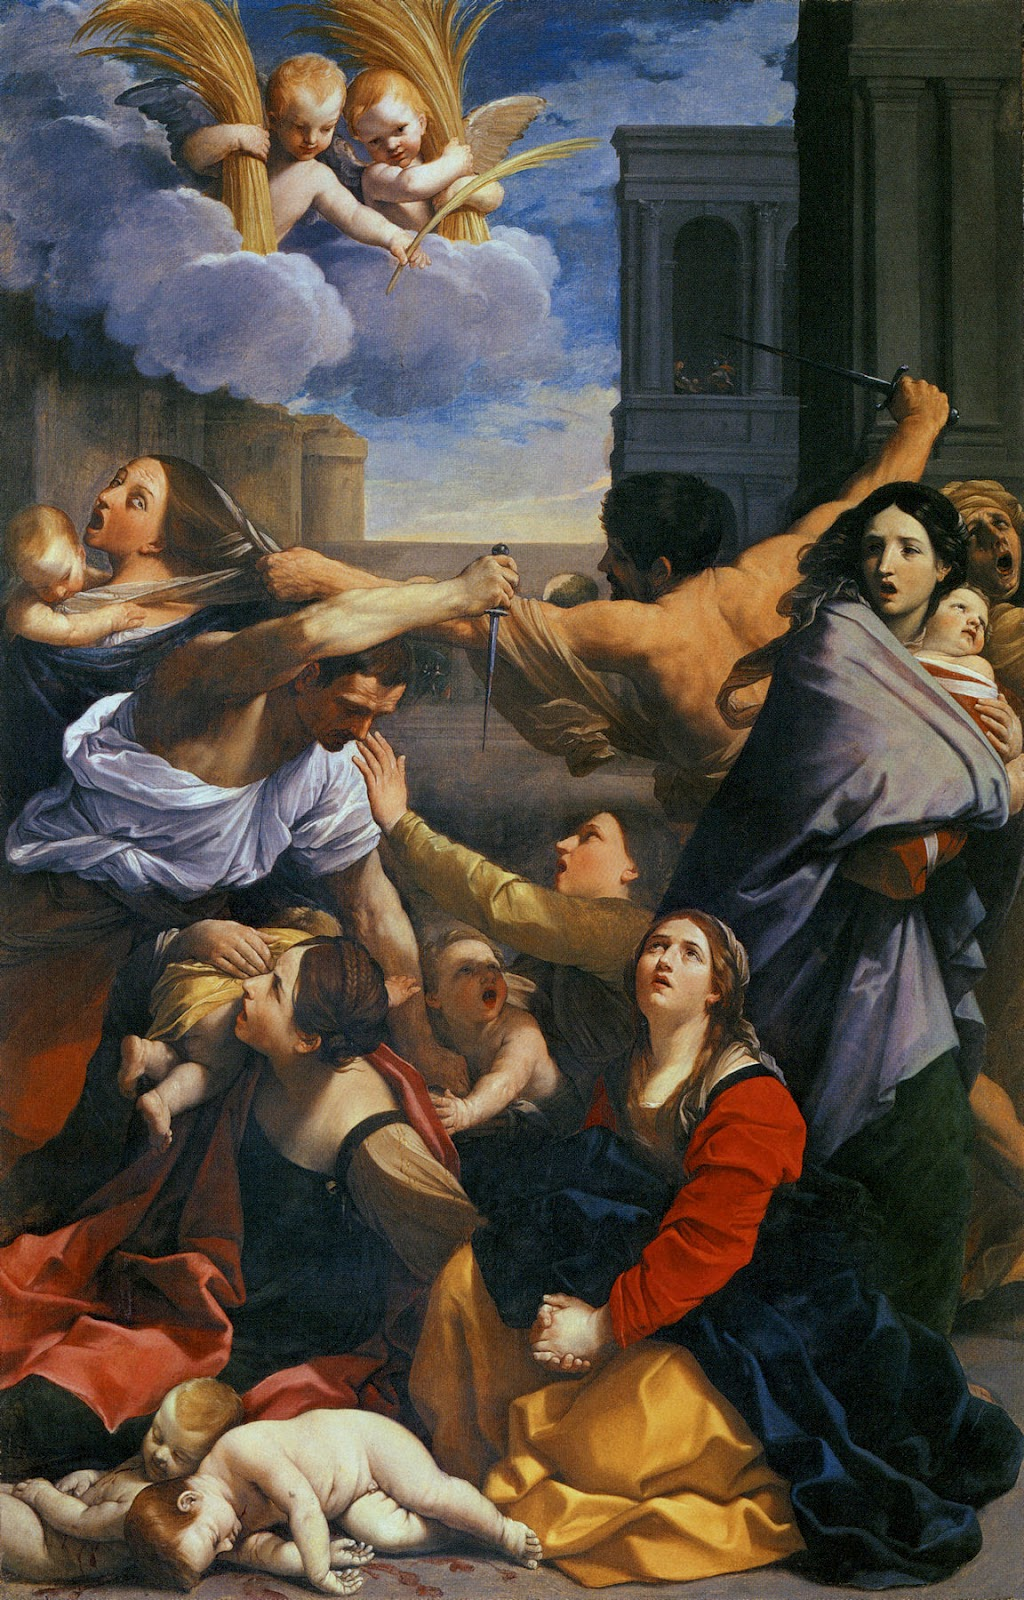 Massacre of the Innocents is a painting by the Italian Baroque painter Guido Reni, created in 1611 for the Basilica of San Domenico in Bologna, but now in the Pinacoteca Nazionale in that same city. The work shows a series of episodes at the same time but is classically composed with each element carefully mirrored by an answering one. Two killer soldiers, one portrayed from behind while rushing on a screaming woman, and one kneeling towards the mothers with their children, hold knives in the right hand. The mothers are reacting in different ways: one is screaming and attempting to escape the soldiers who has grabbed her hair, another is fleeing towards the right while embracing her child, while another, in the lower left corner, is holding her child on her shoulders; another mother tries to stop a soldier with her left hand, and a kneeling woman is praying towards the sky above the children which have already been slaughtered.